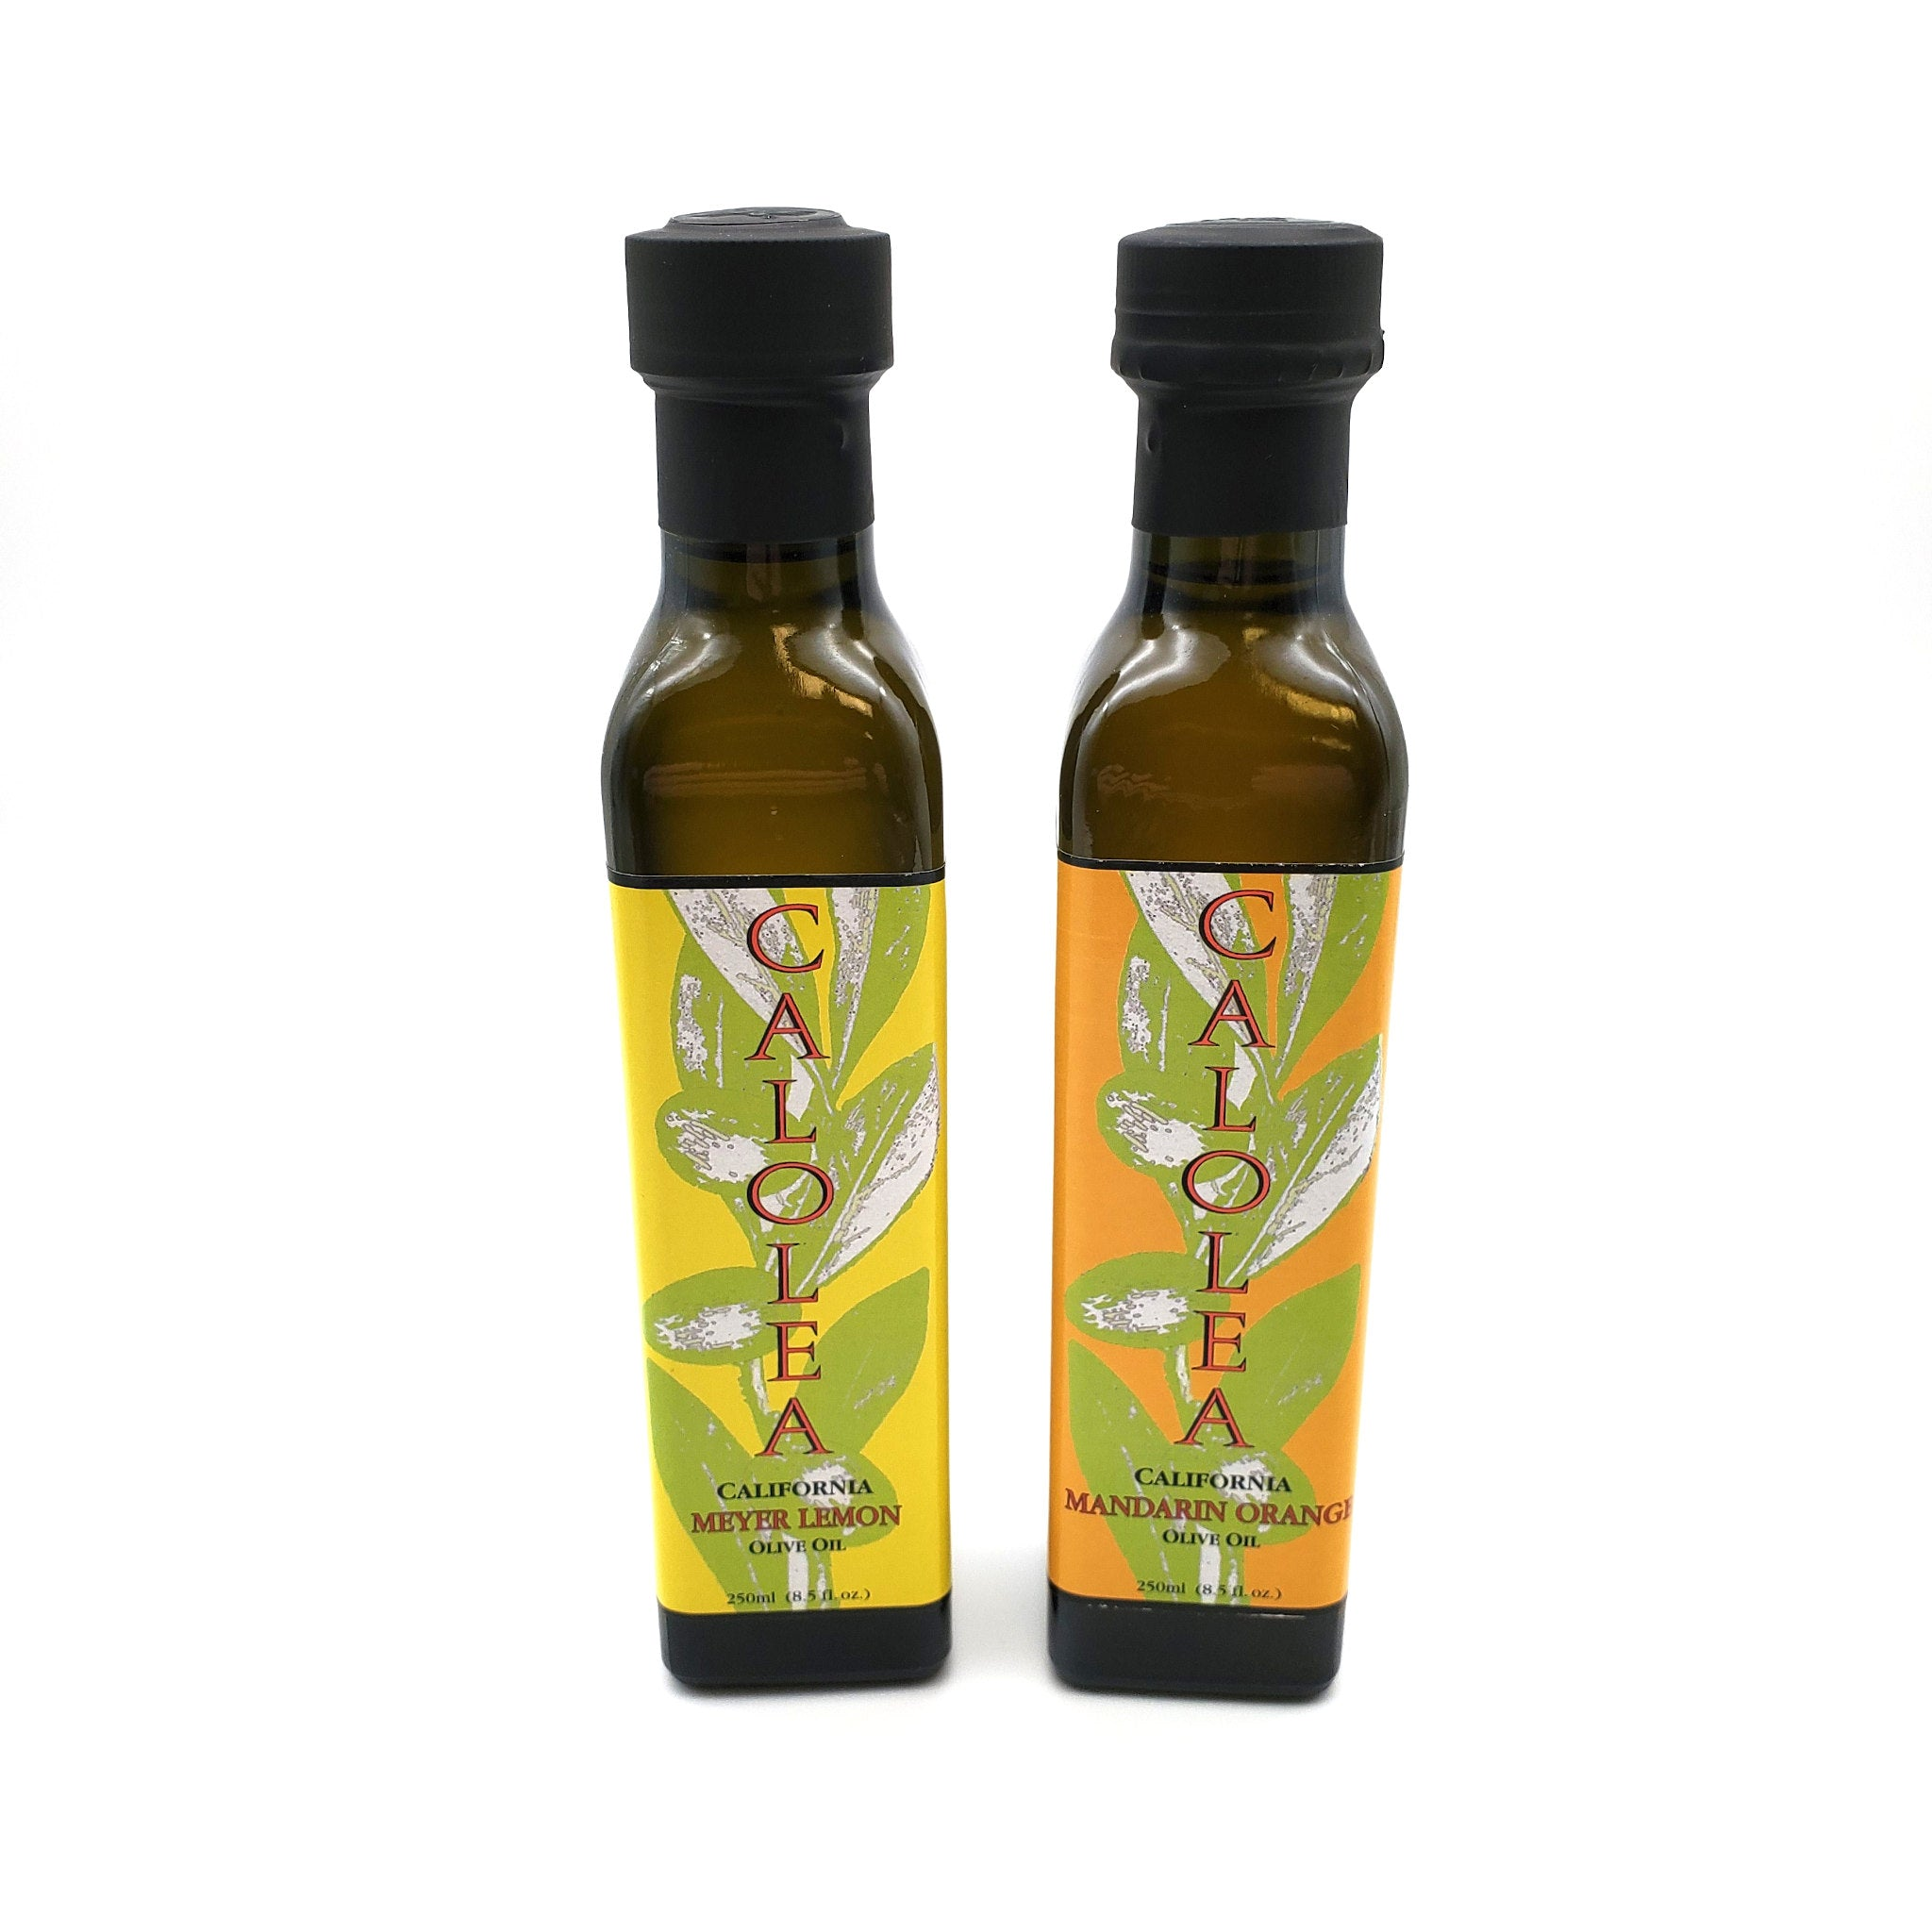 Meyer Lemon Olive Oil and Mandarin Orange Olive Oil in 250 ml bottles